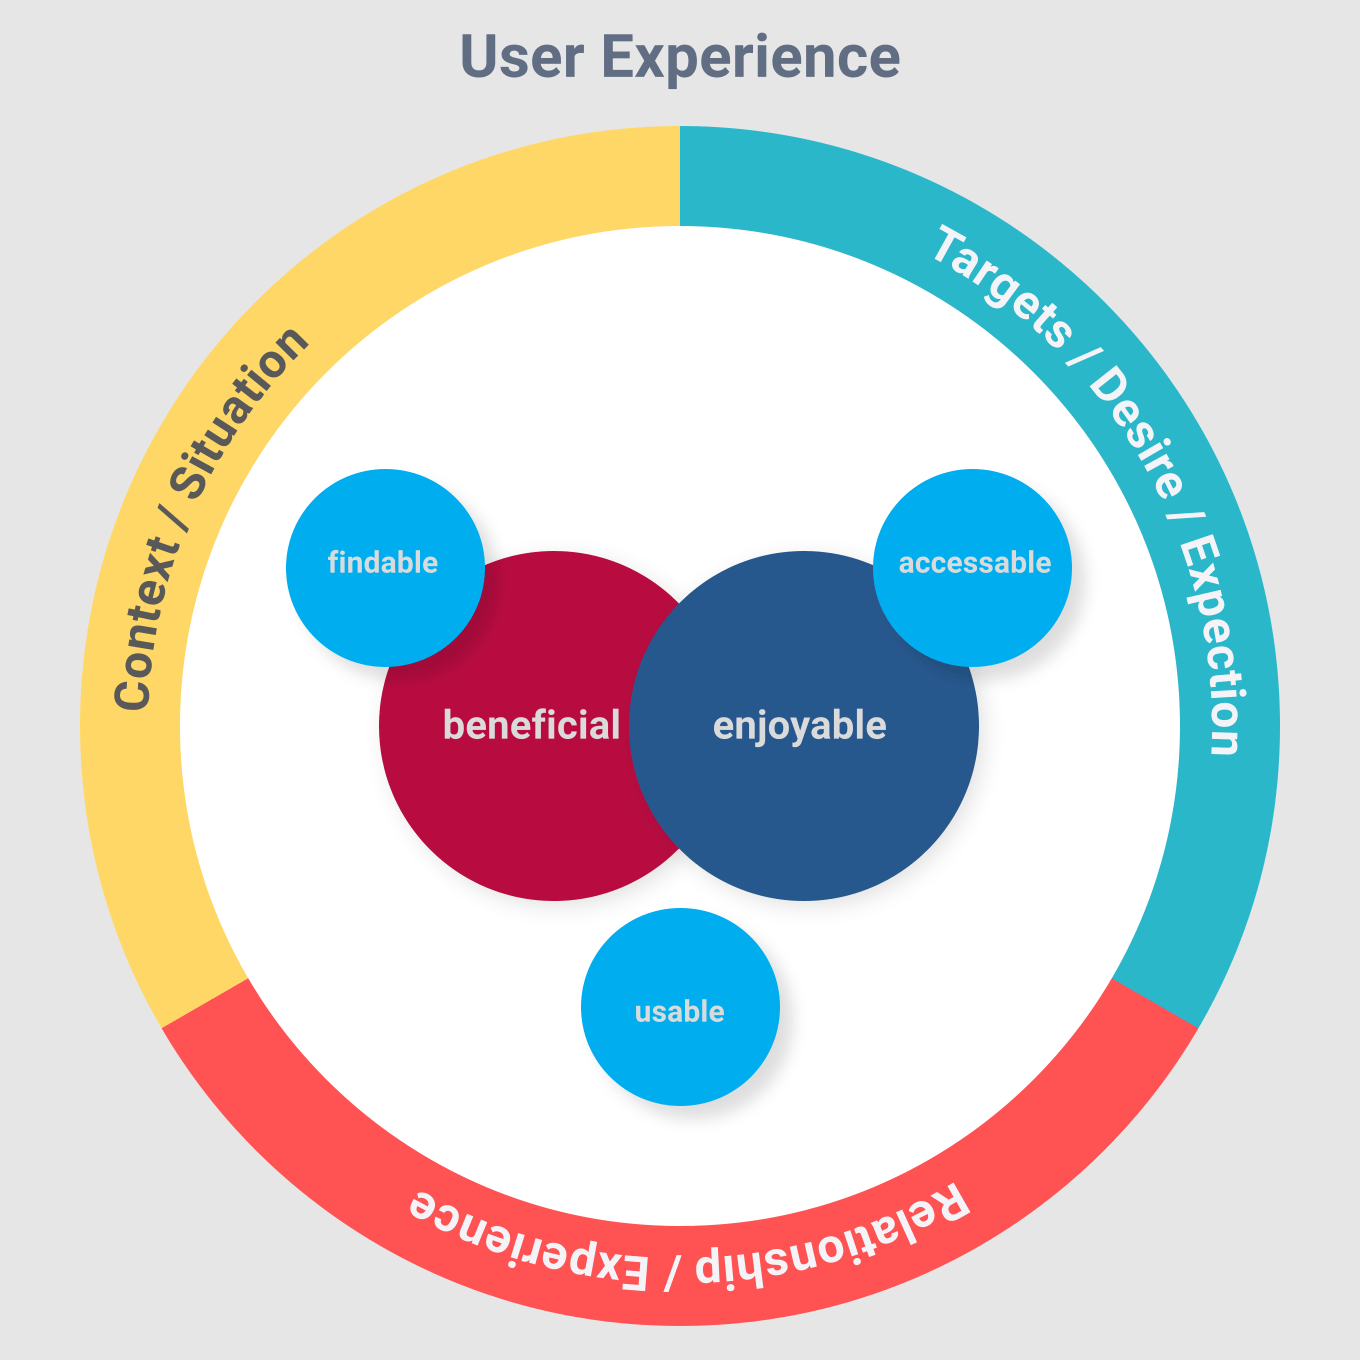 What is the key to a good user experience by Thomas Sokolowski